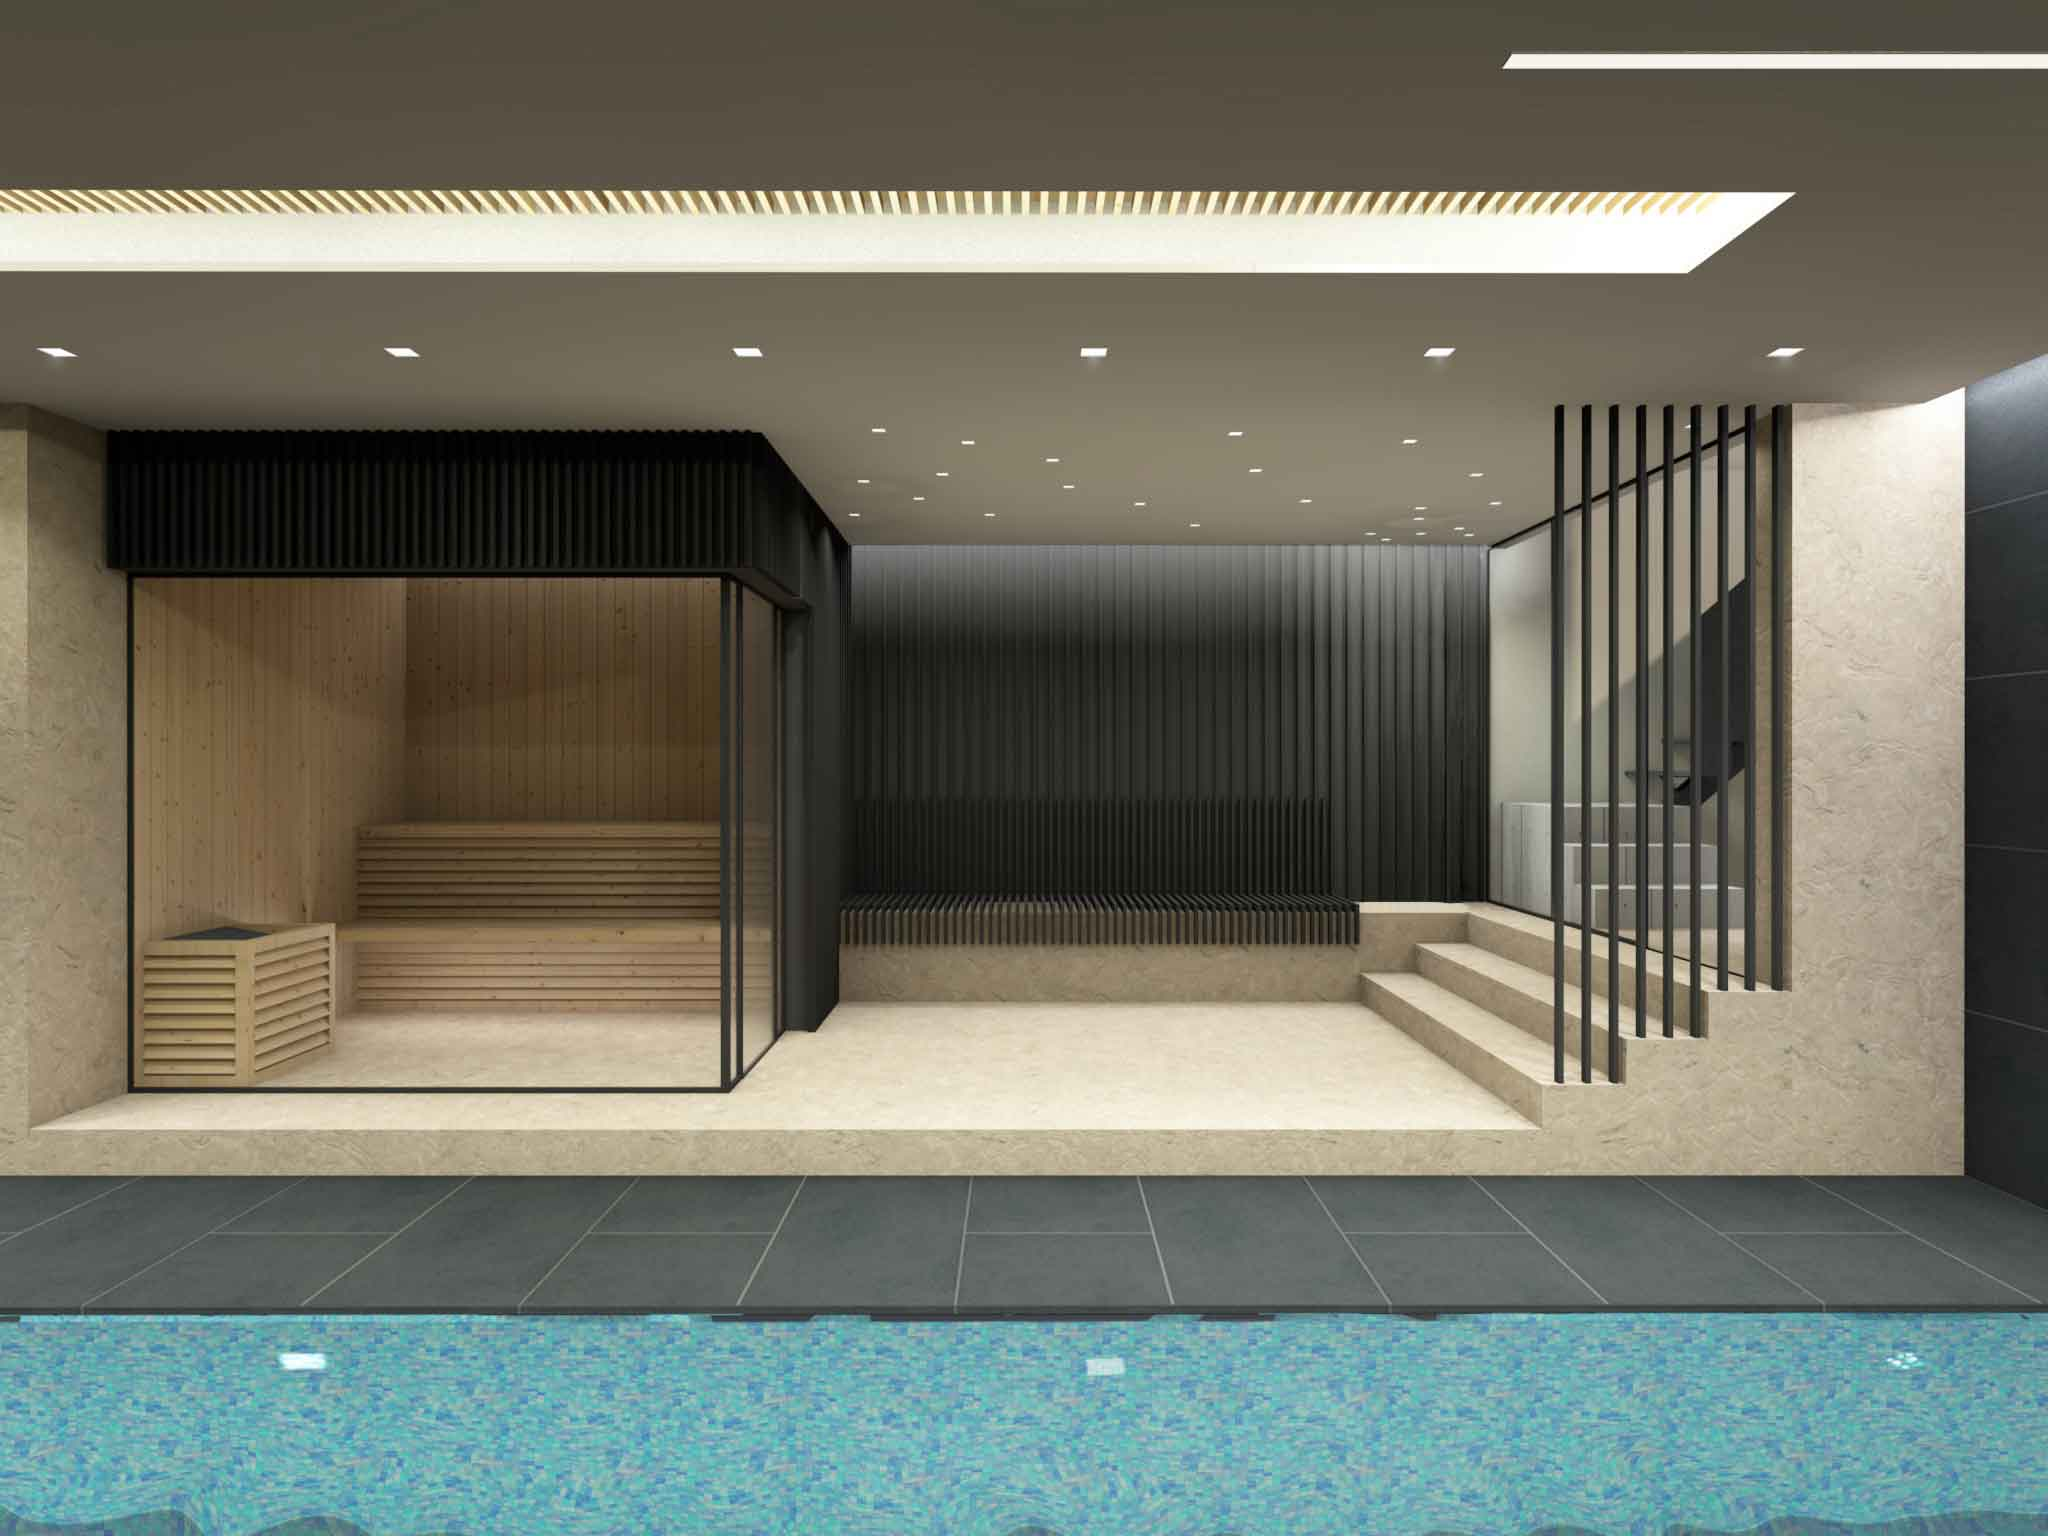 Concept design for an 18metre long pool